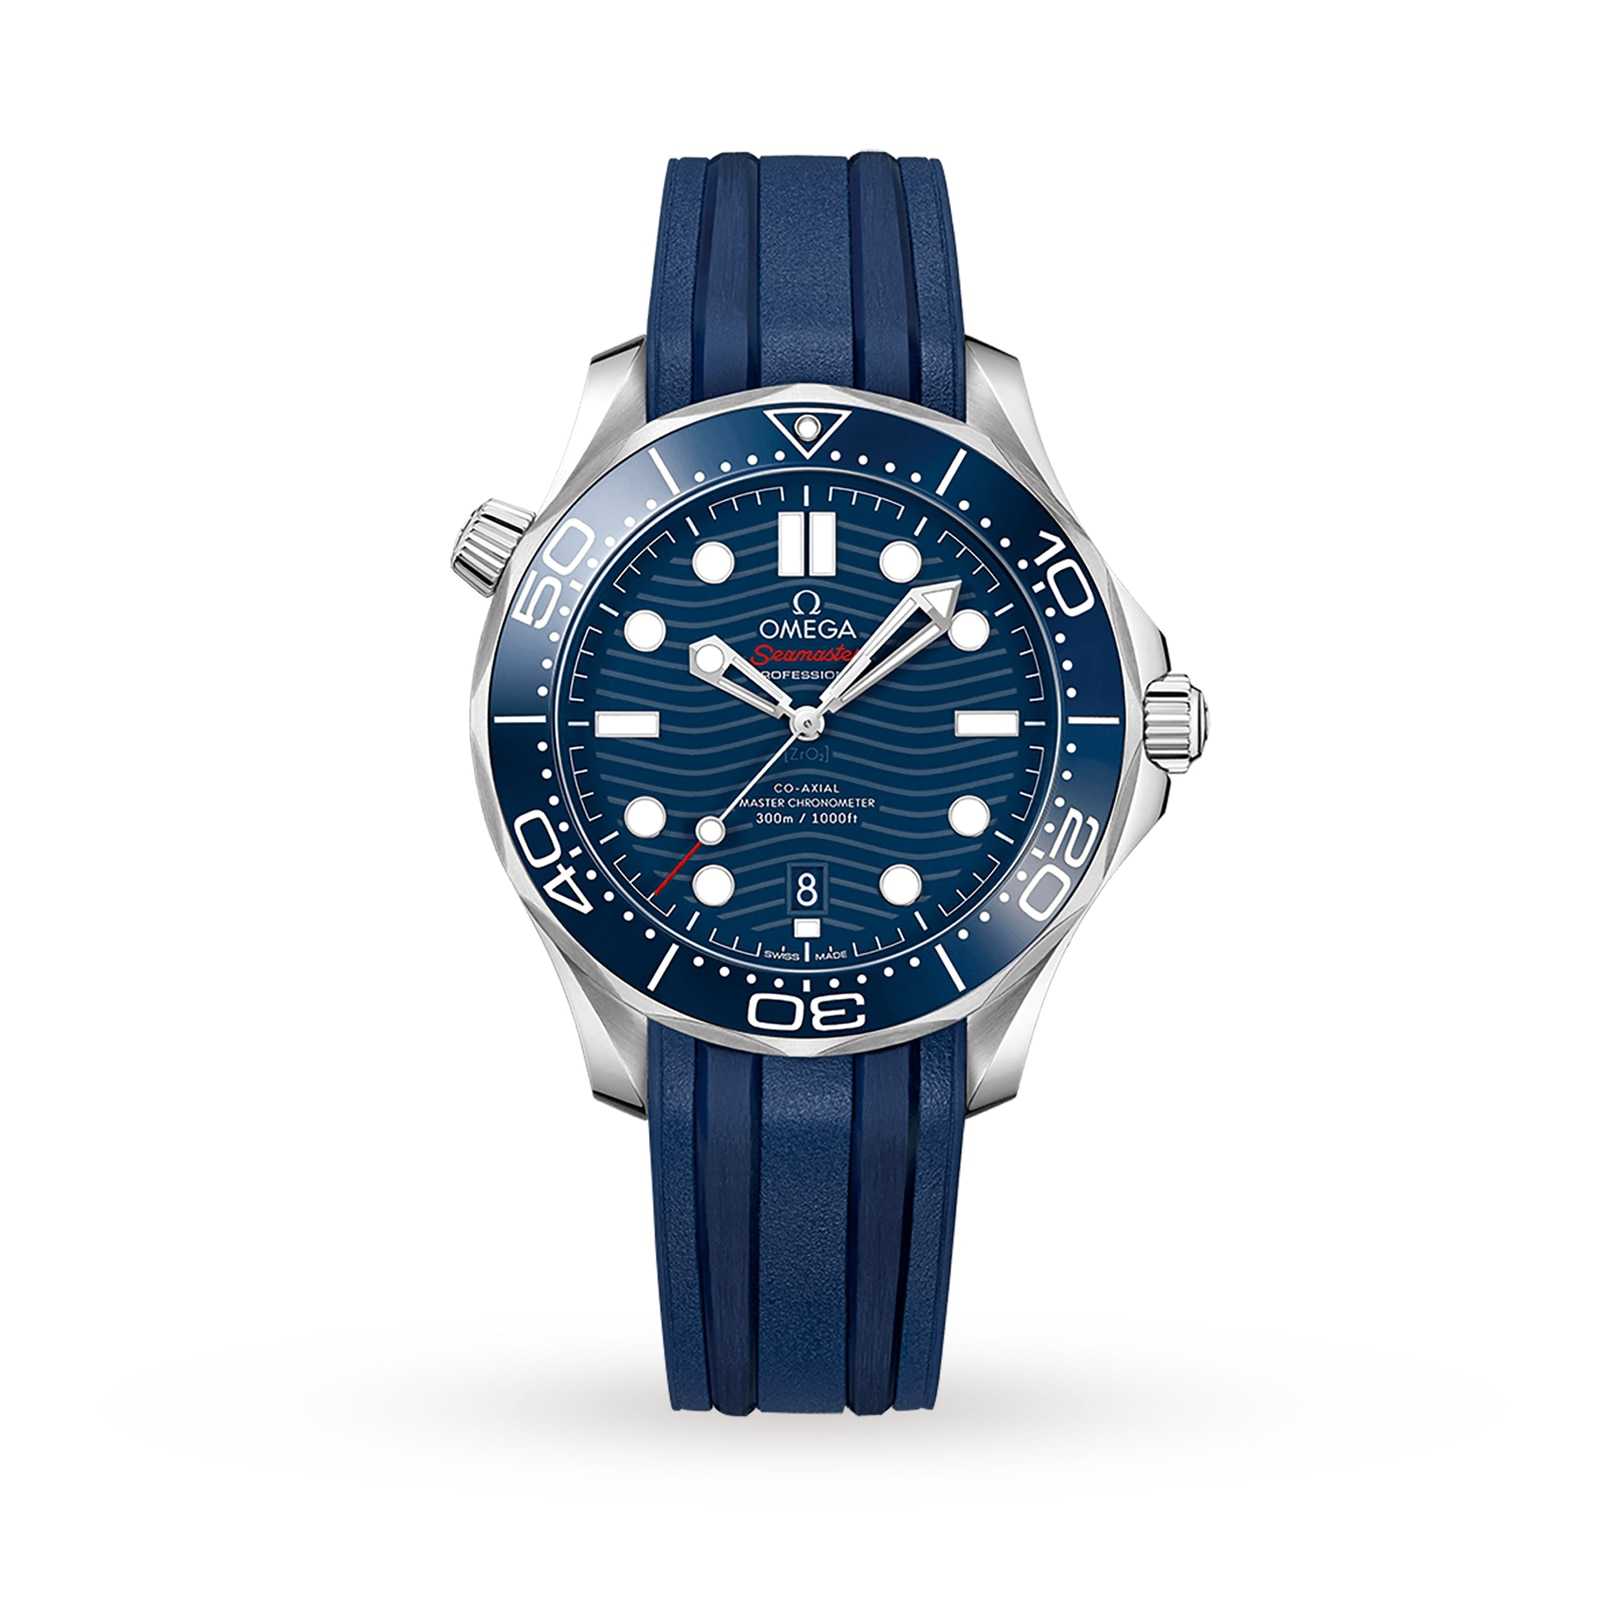 Omega Seamaster Diver 300 Co-Axial Mens Watch O21032422003001